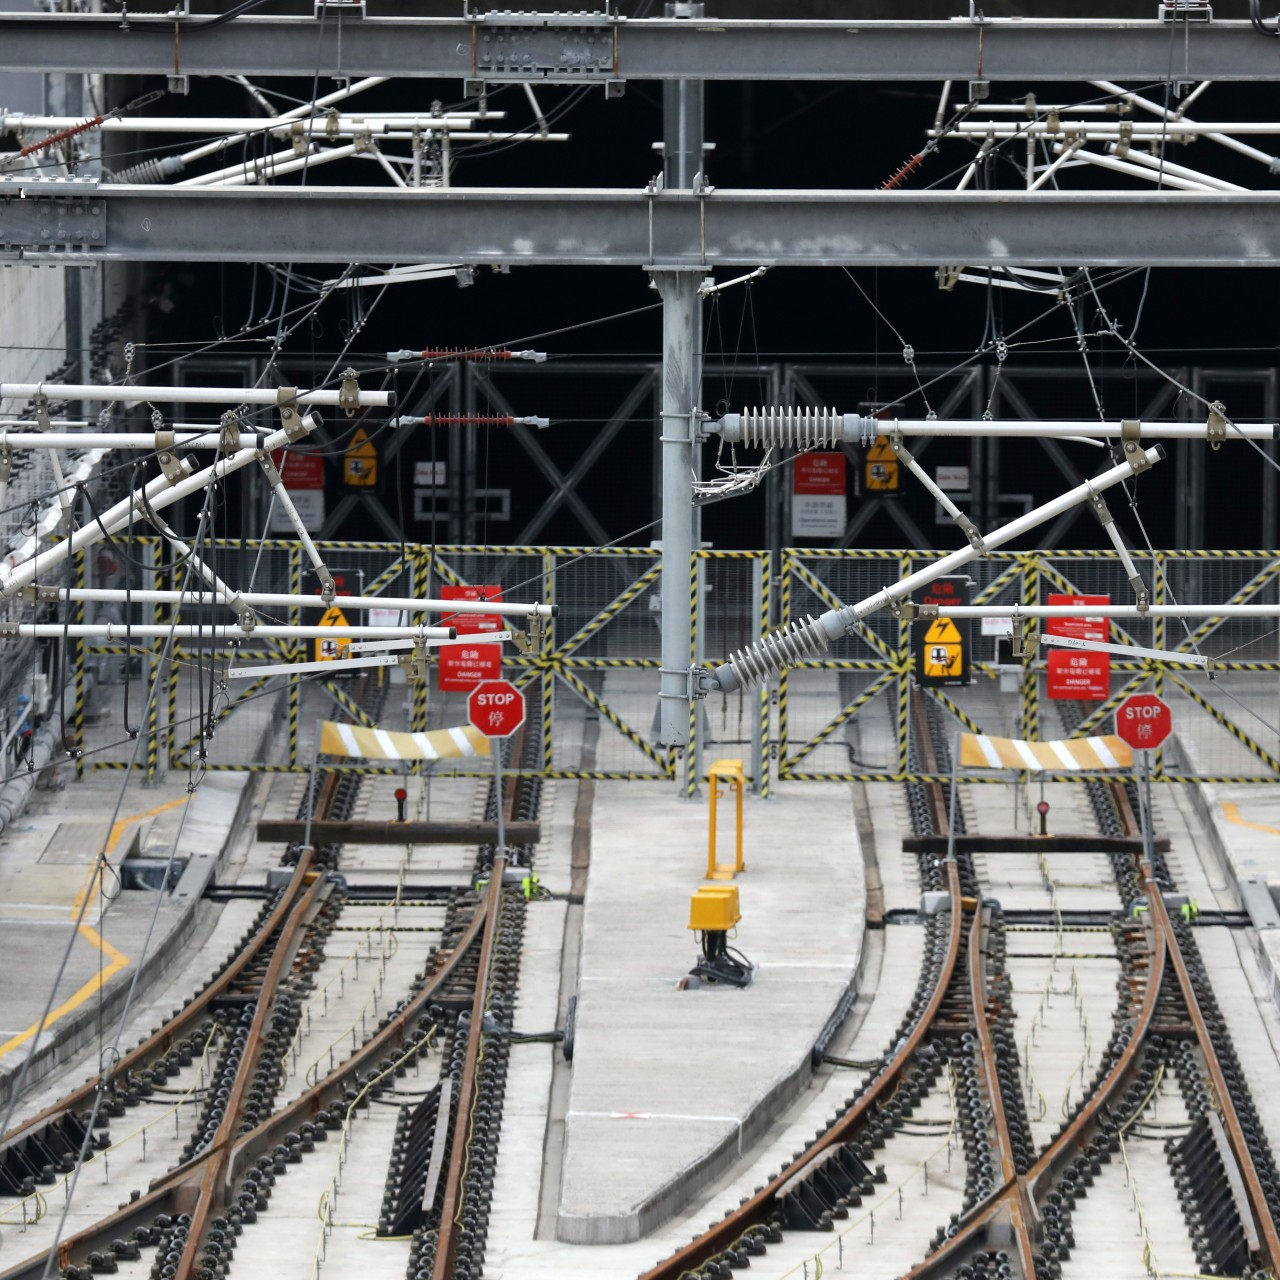 Best Backup Iron Sights 2020 First section of Hong Kong's most expensive rail project, the Sha